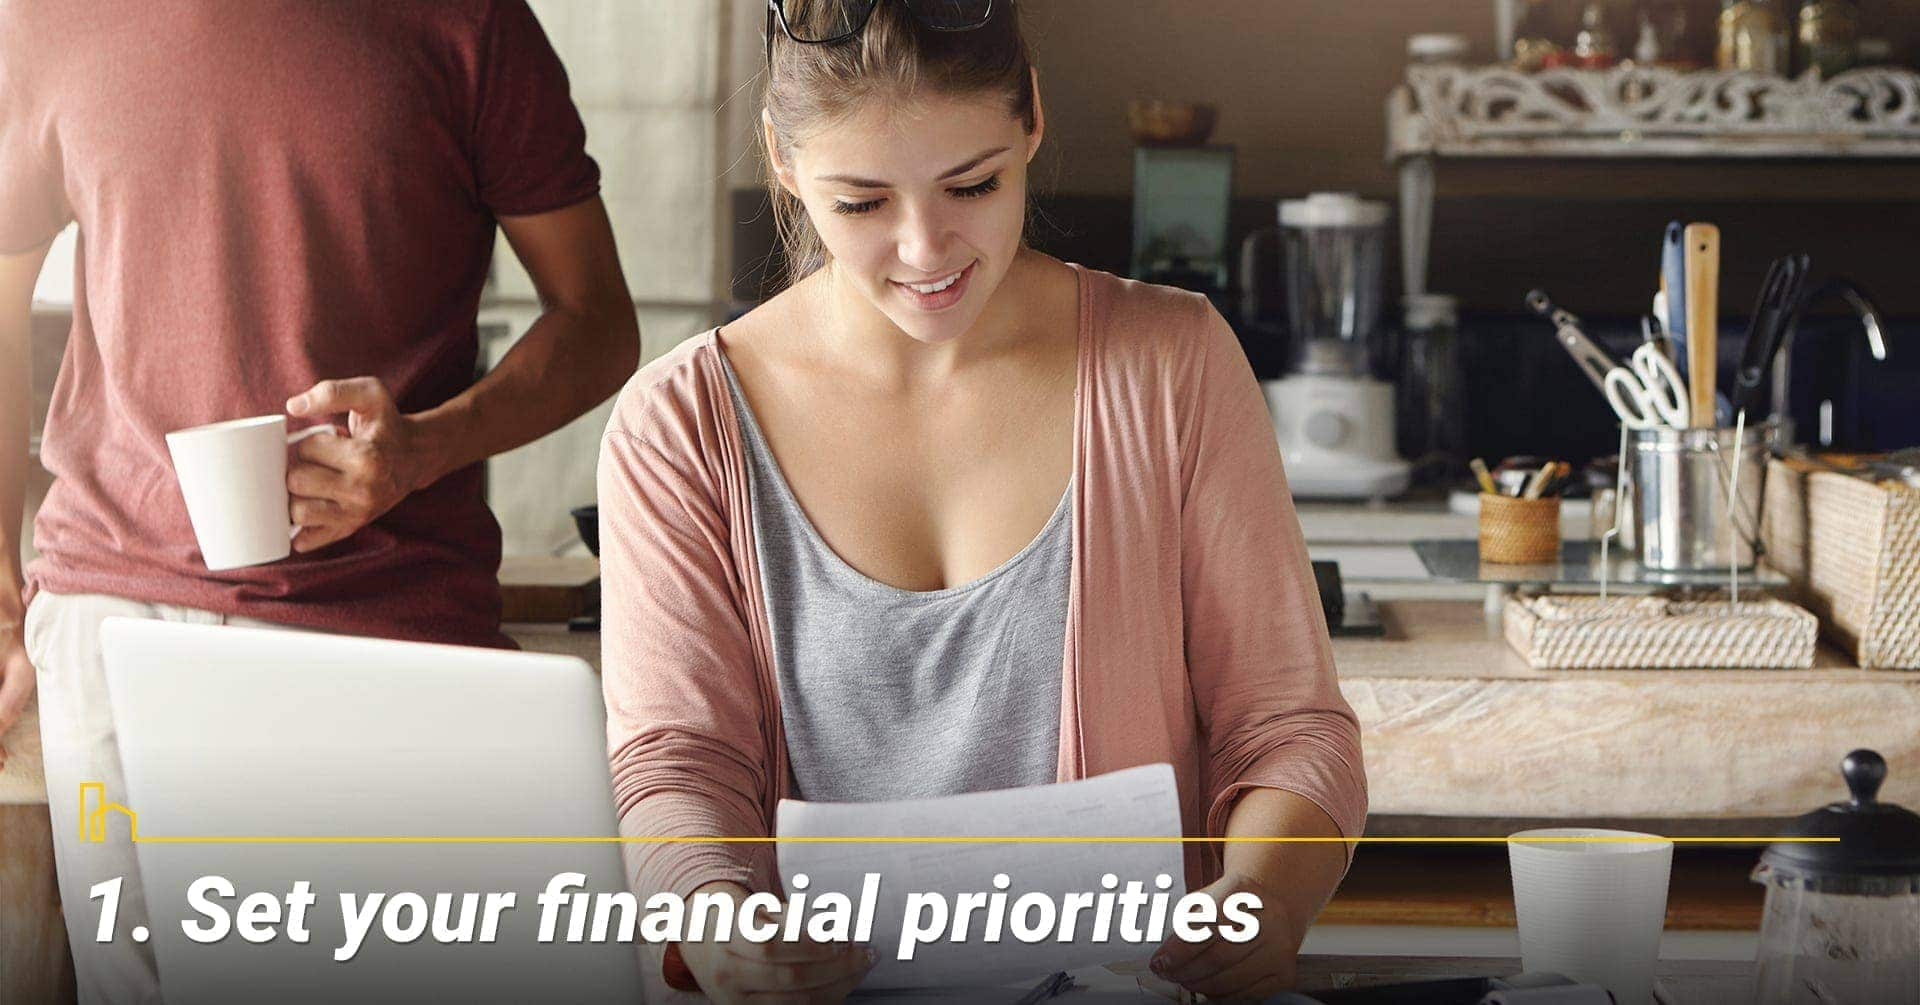 Set your financial priorities